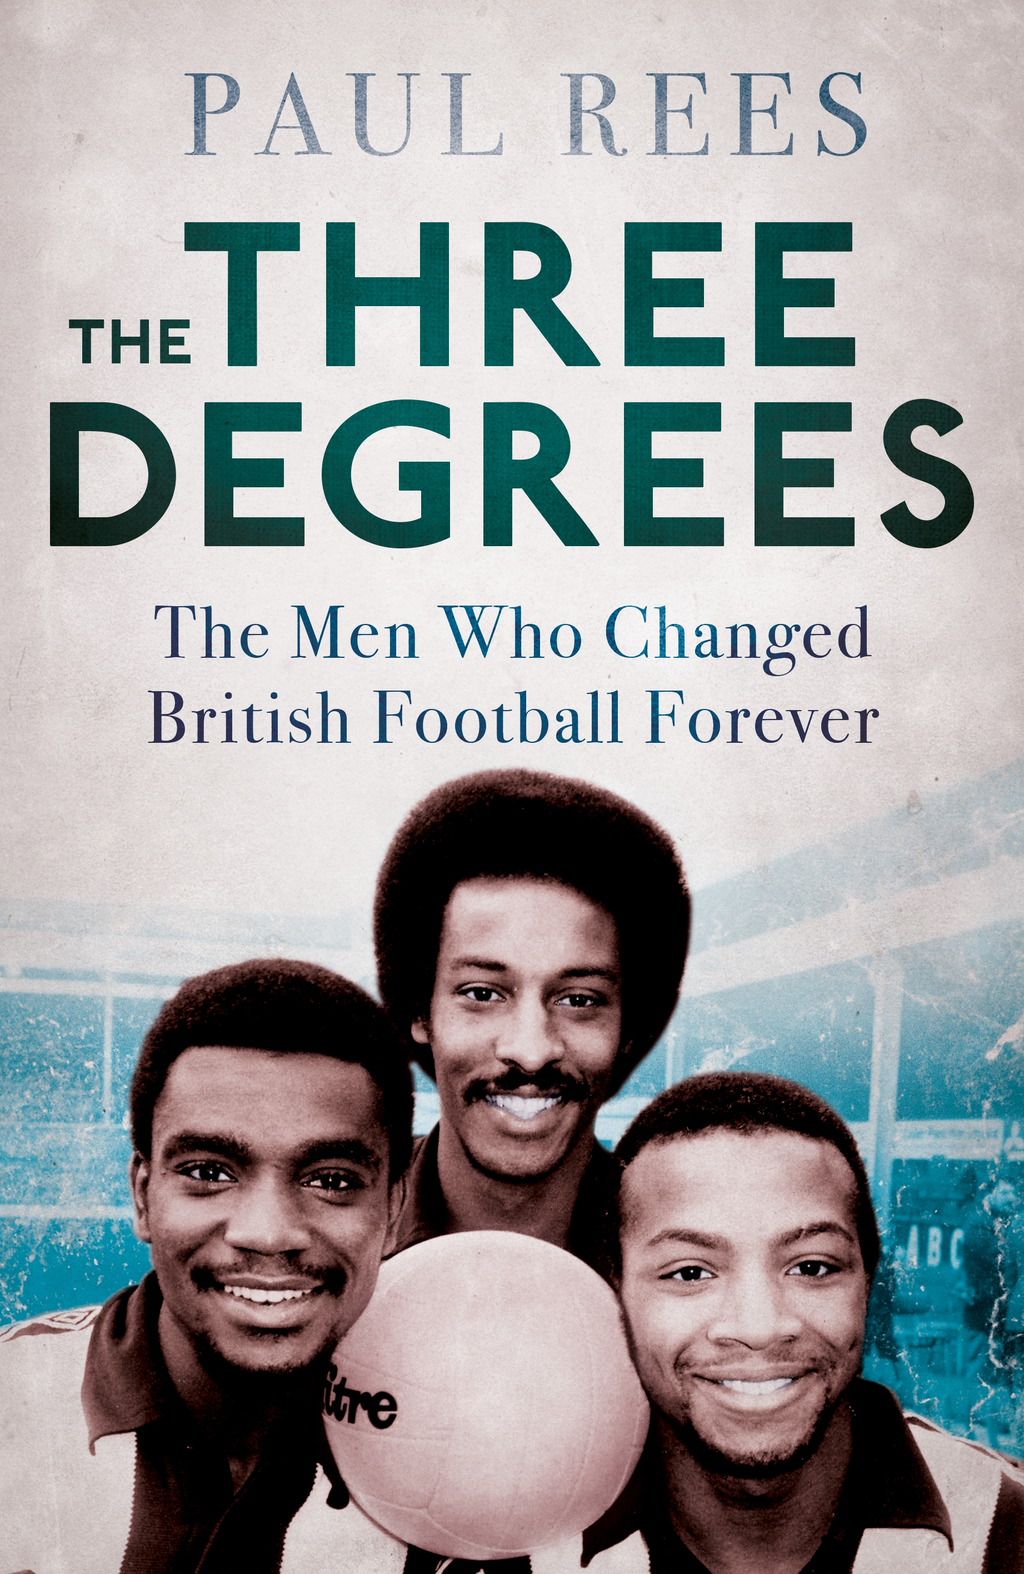 The Three Degrees The Men Who Changed British Football Forever